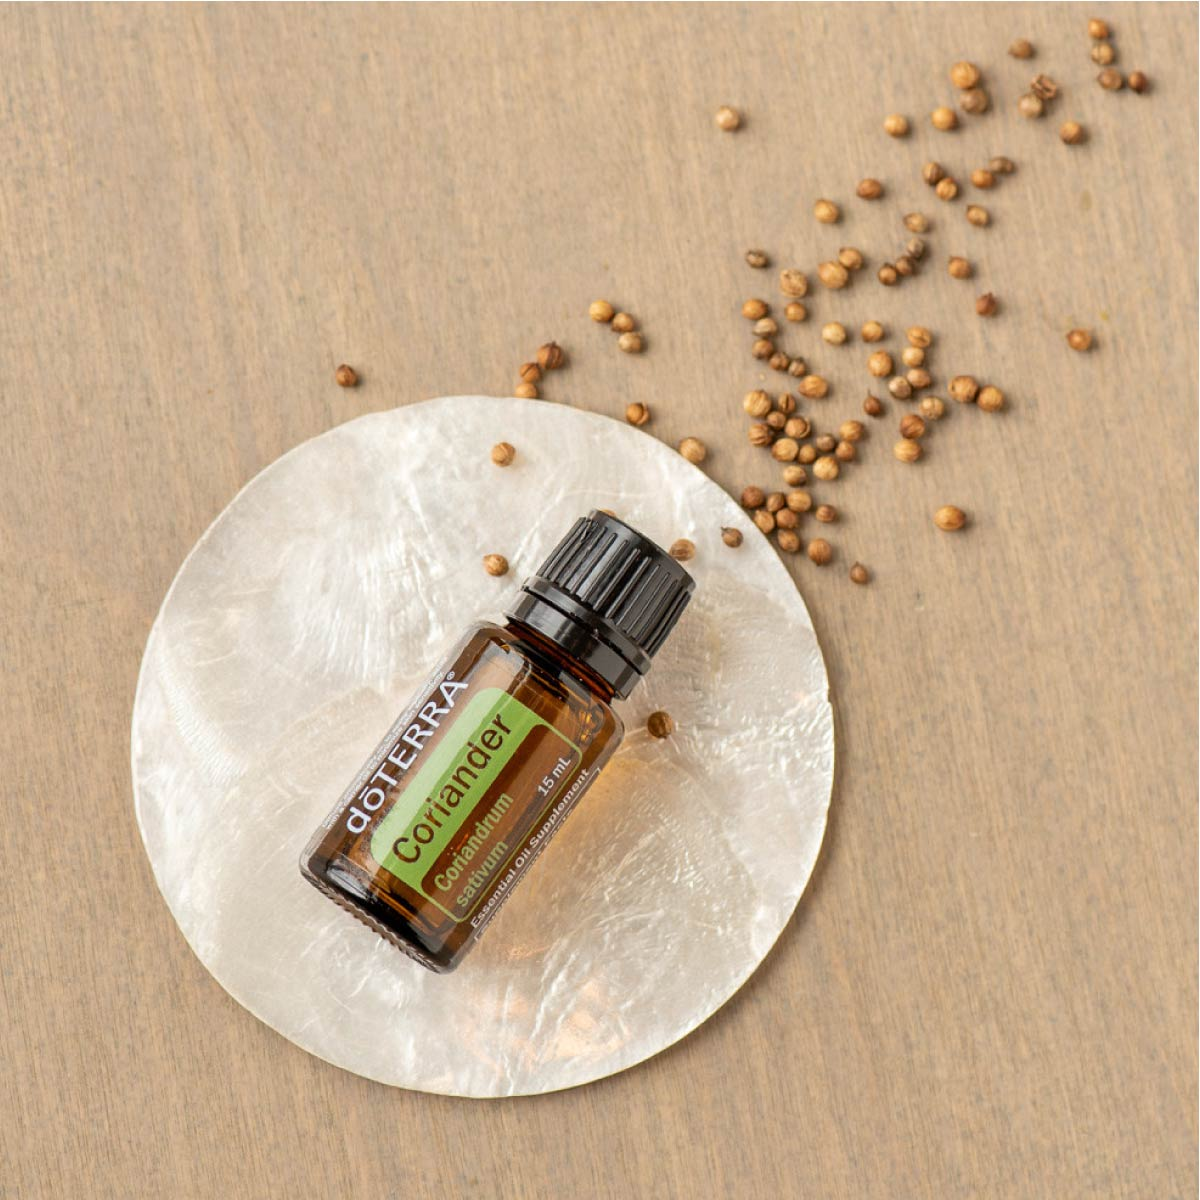 Bottle of Coriander essential oil and coriander seeds on a table. There are many benefits of Coriander oil. People use Coriander seed oil for the skin, mood, and digestion.